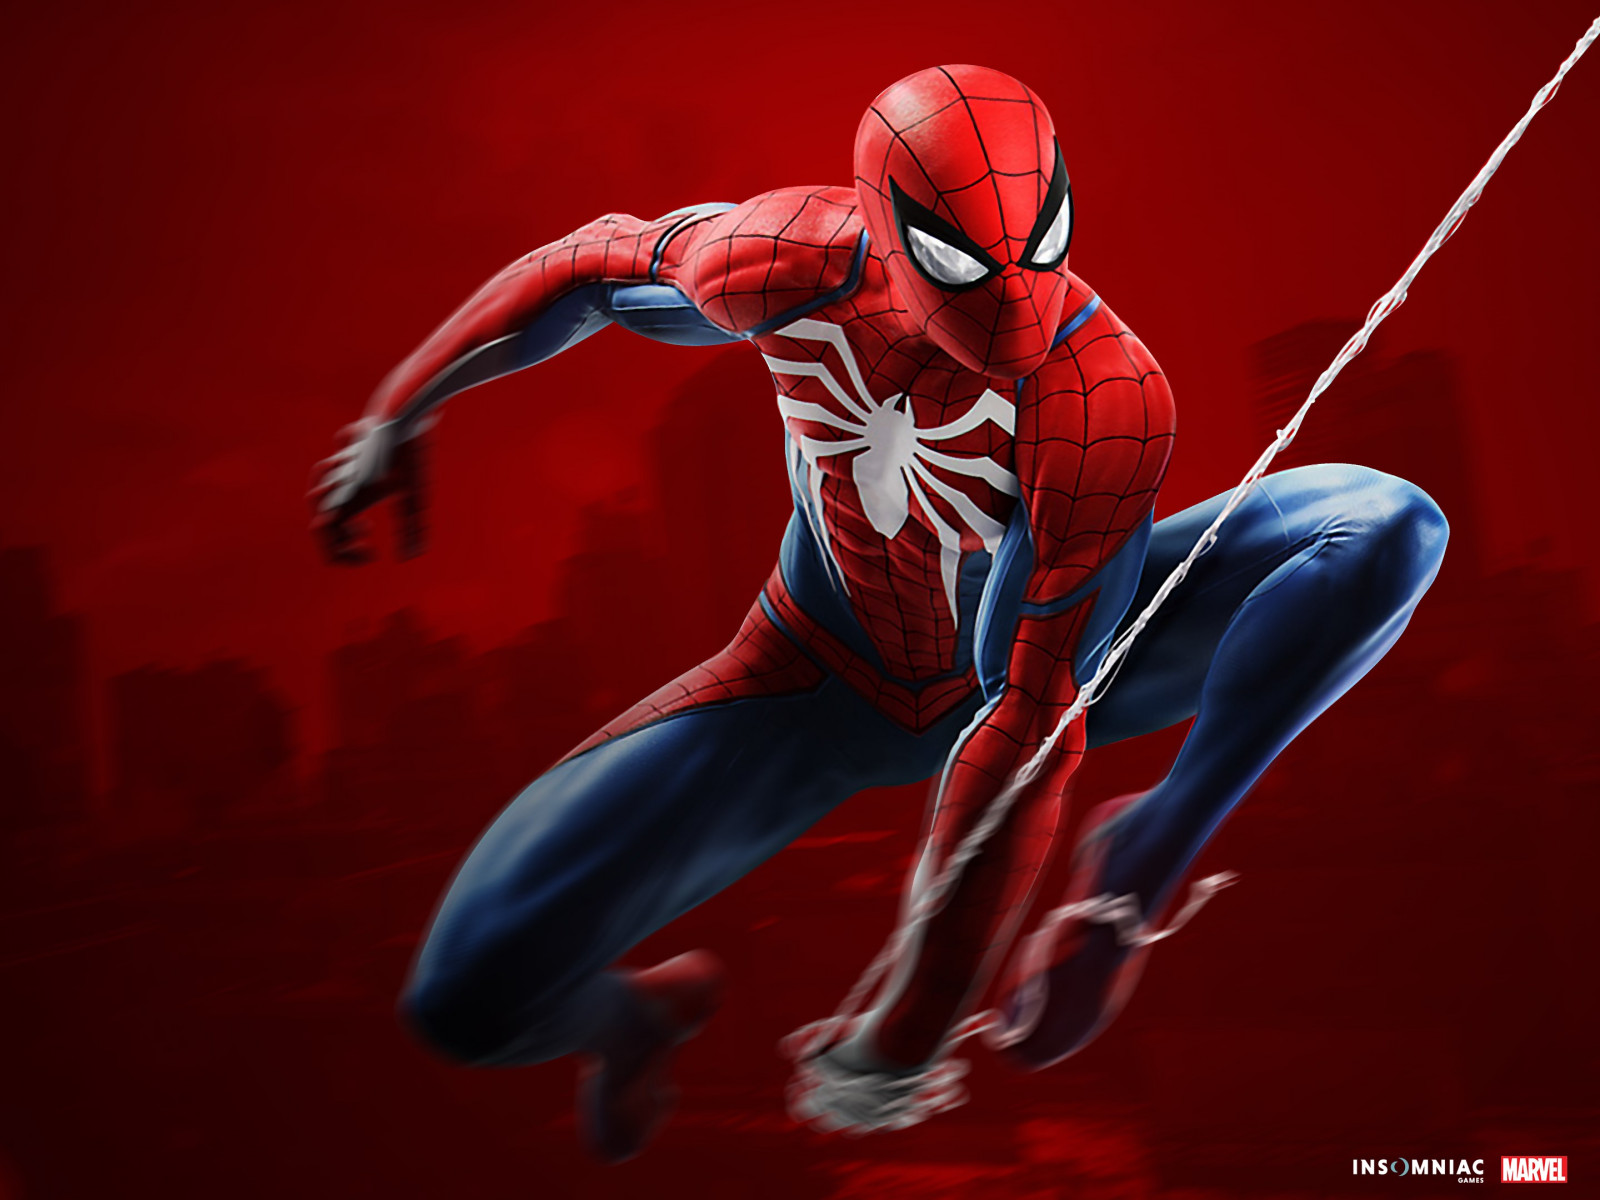 Spider Man game on PS4 wallpaper 1600x1200